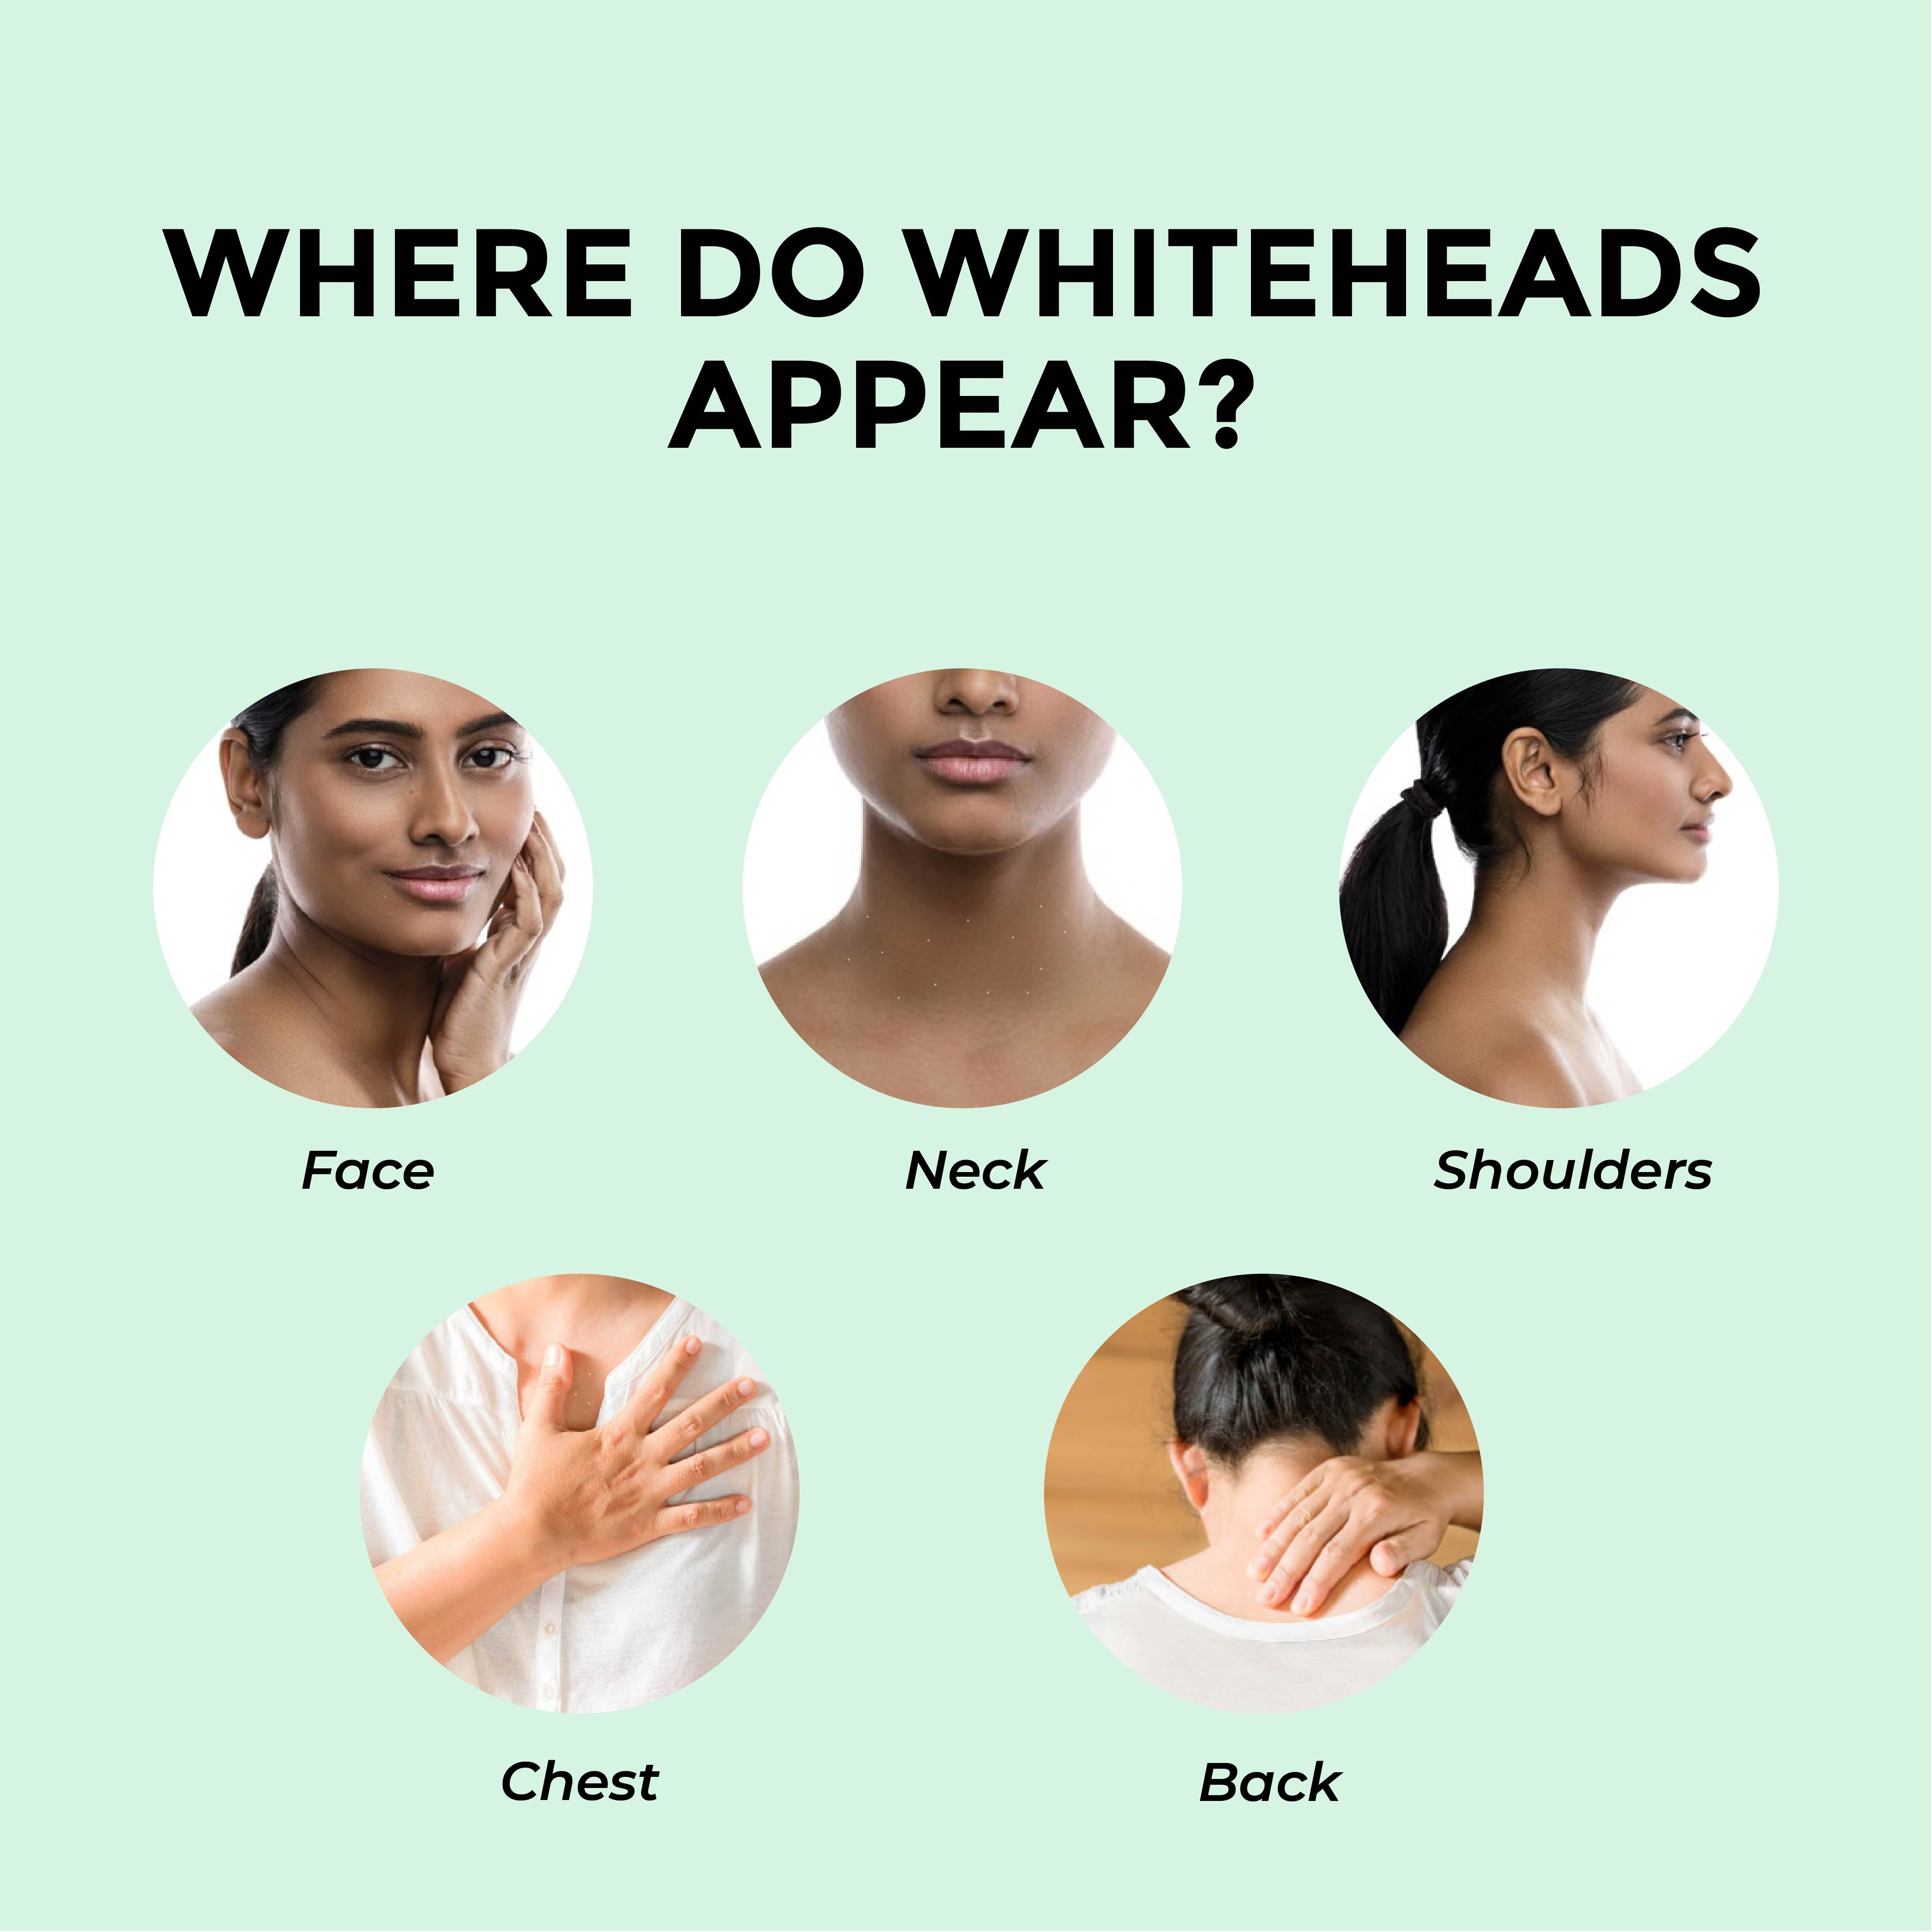 This is an image of where do whiteheads appear on www.sublimelife.in